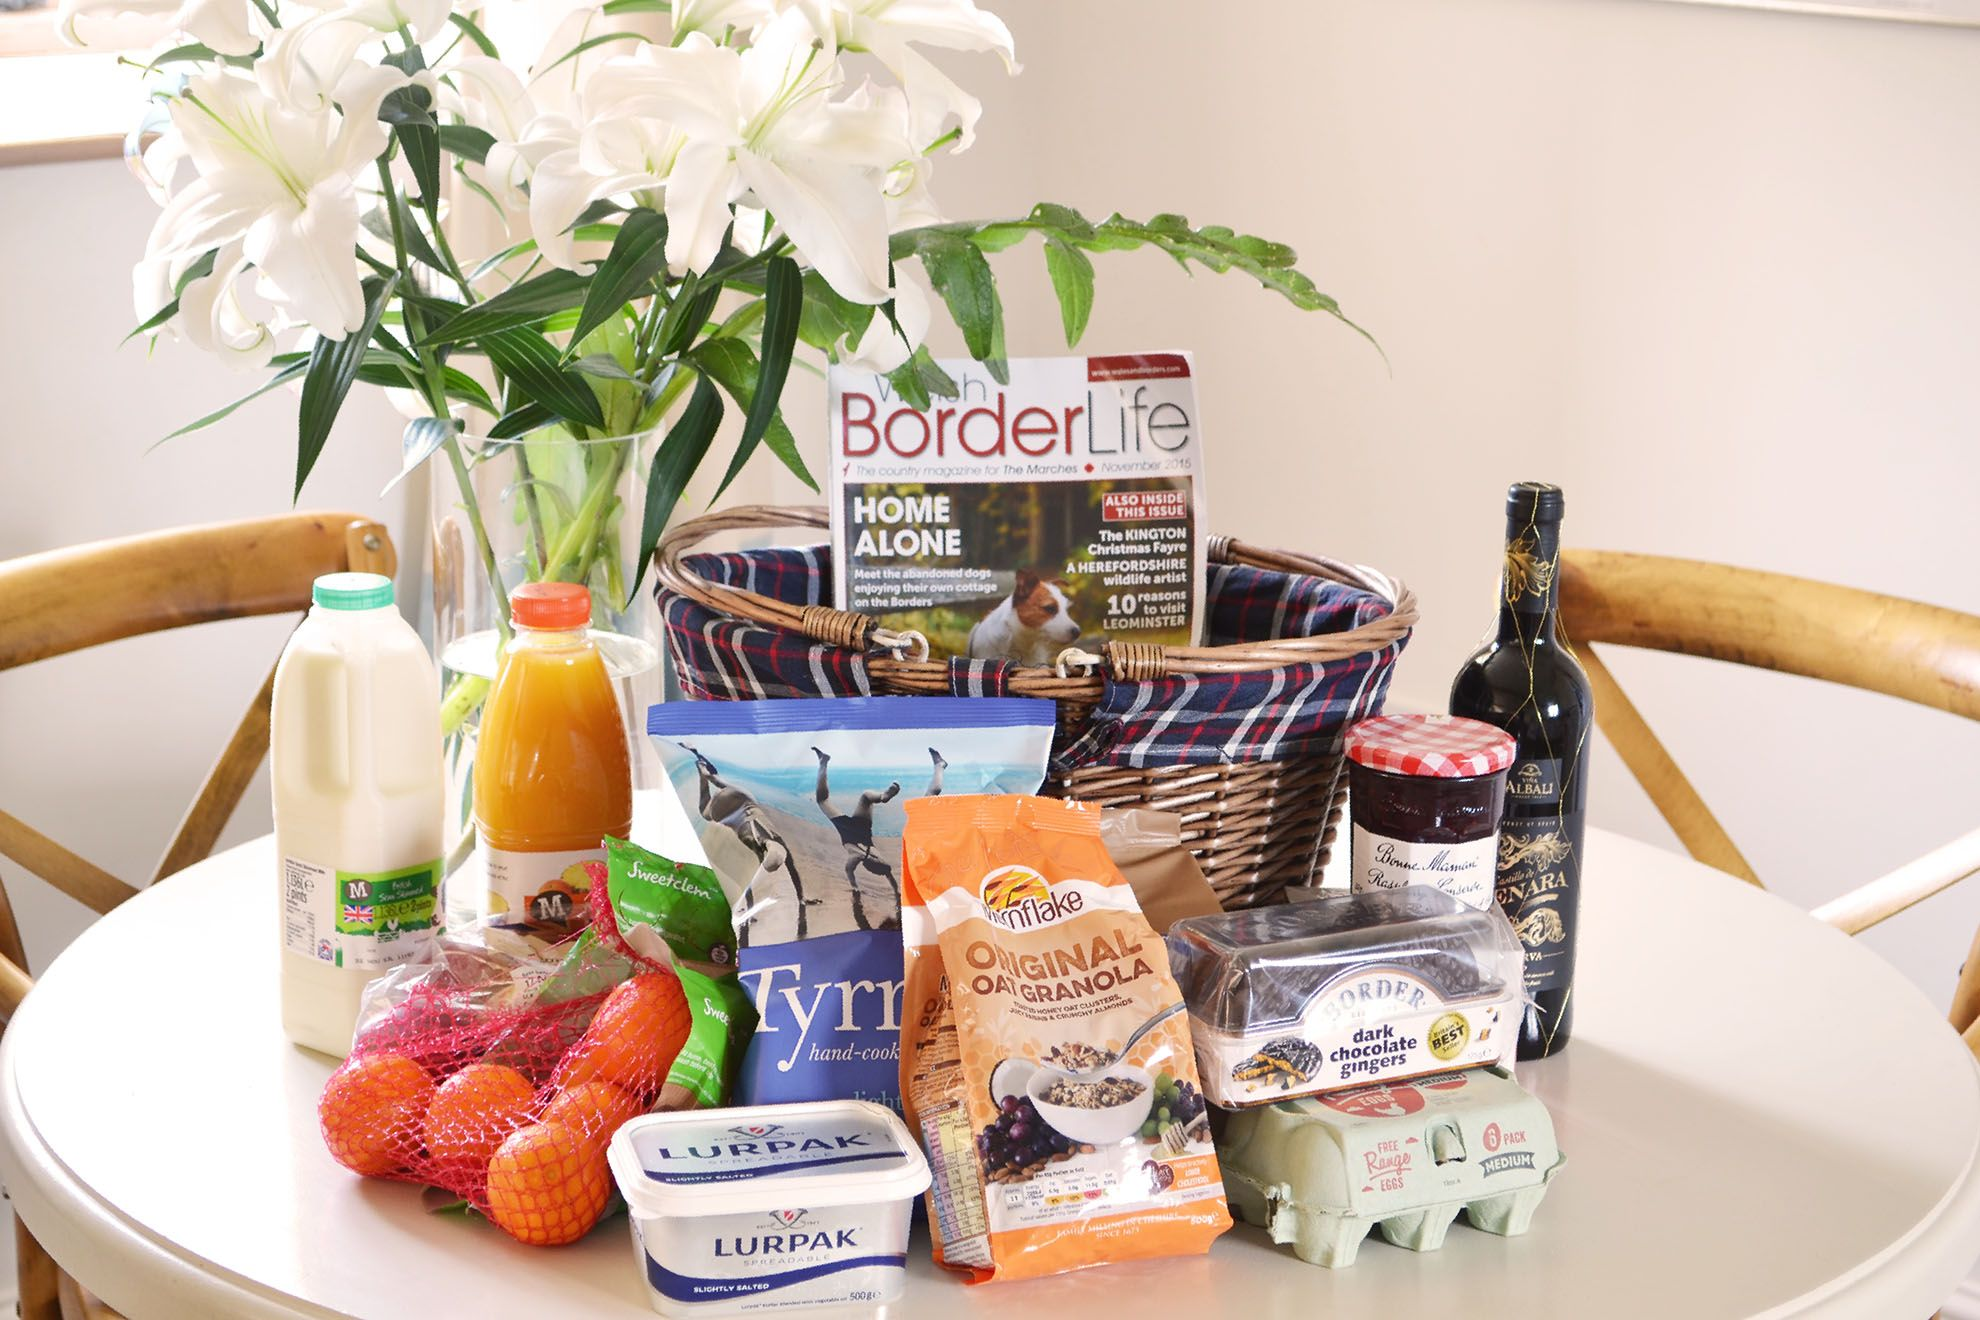 A complimentary welcome hamper awaits guests on their arrival